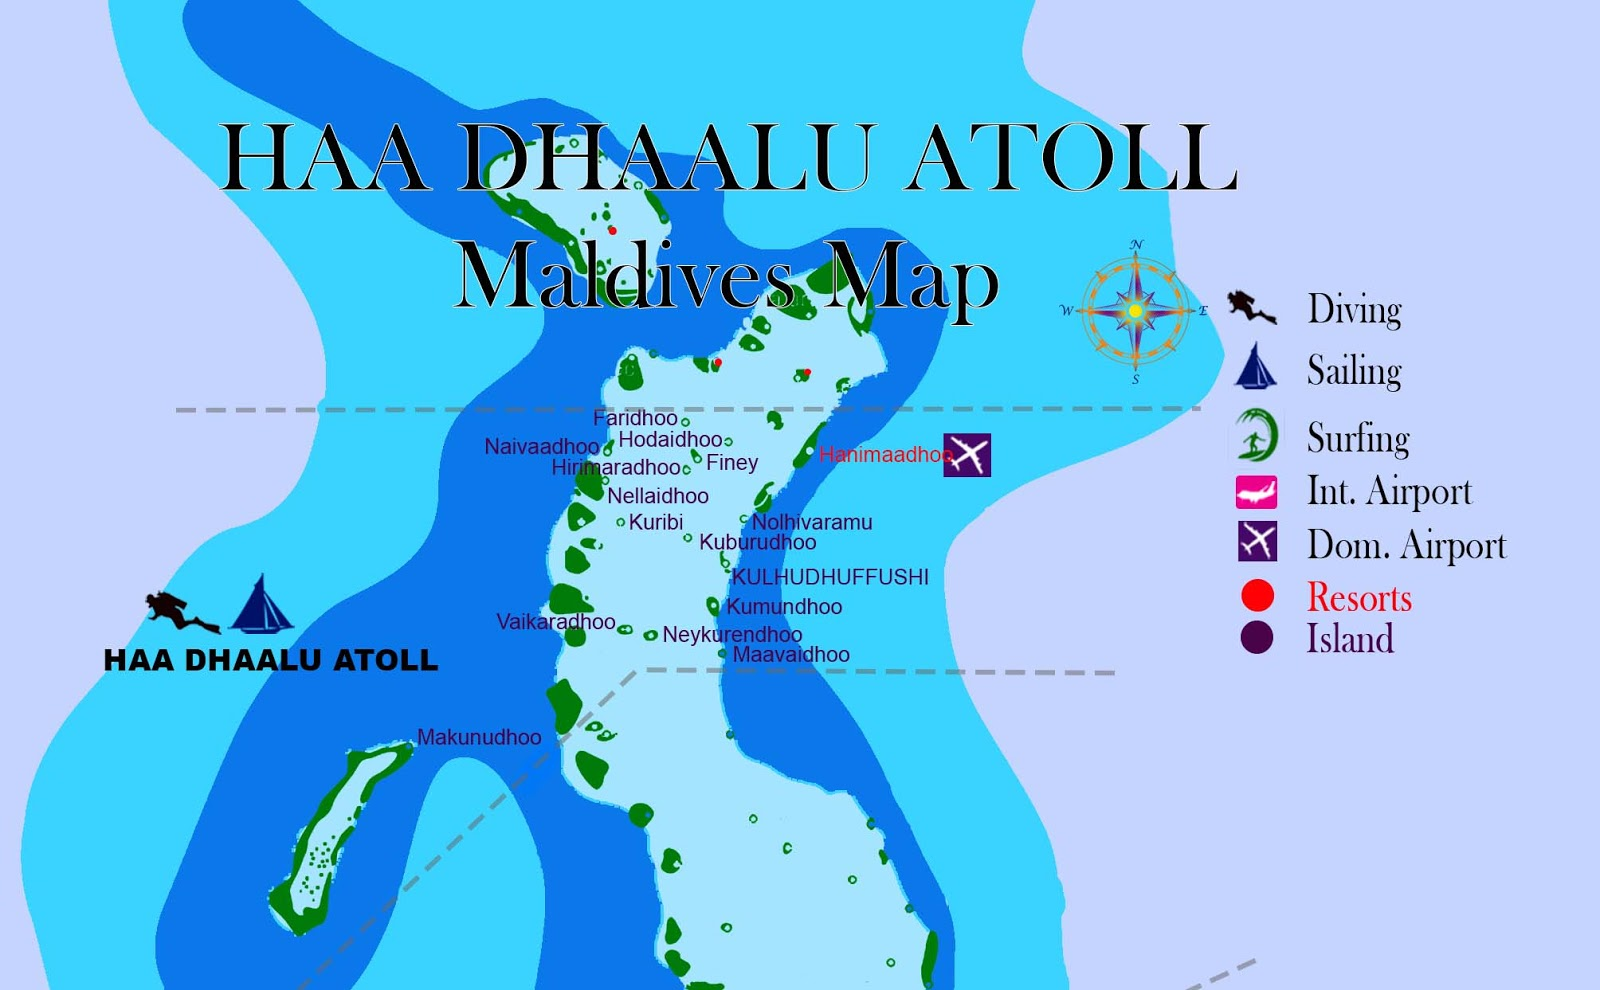 maldives map, maldives atolls